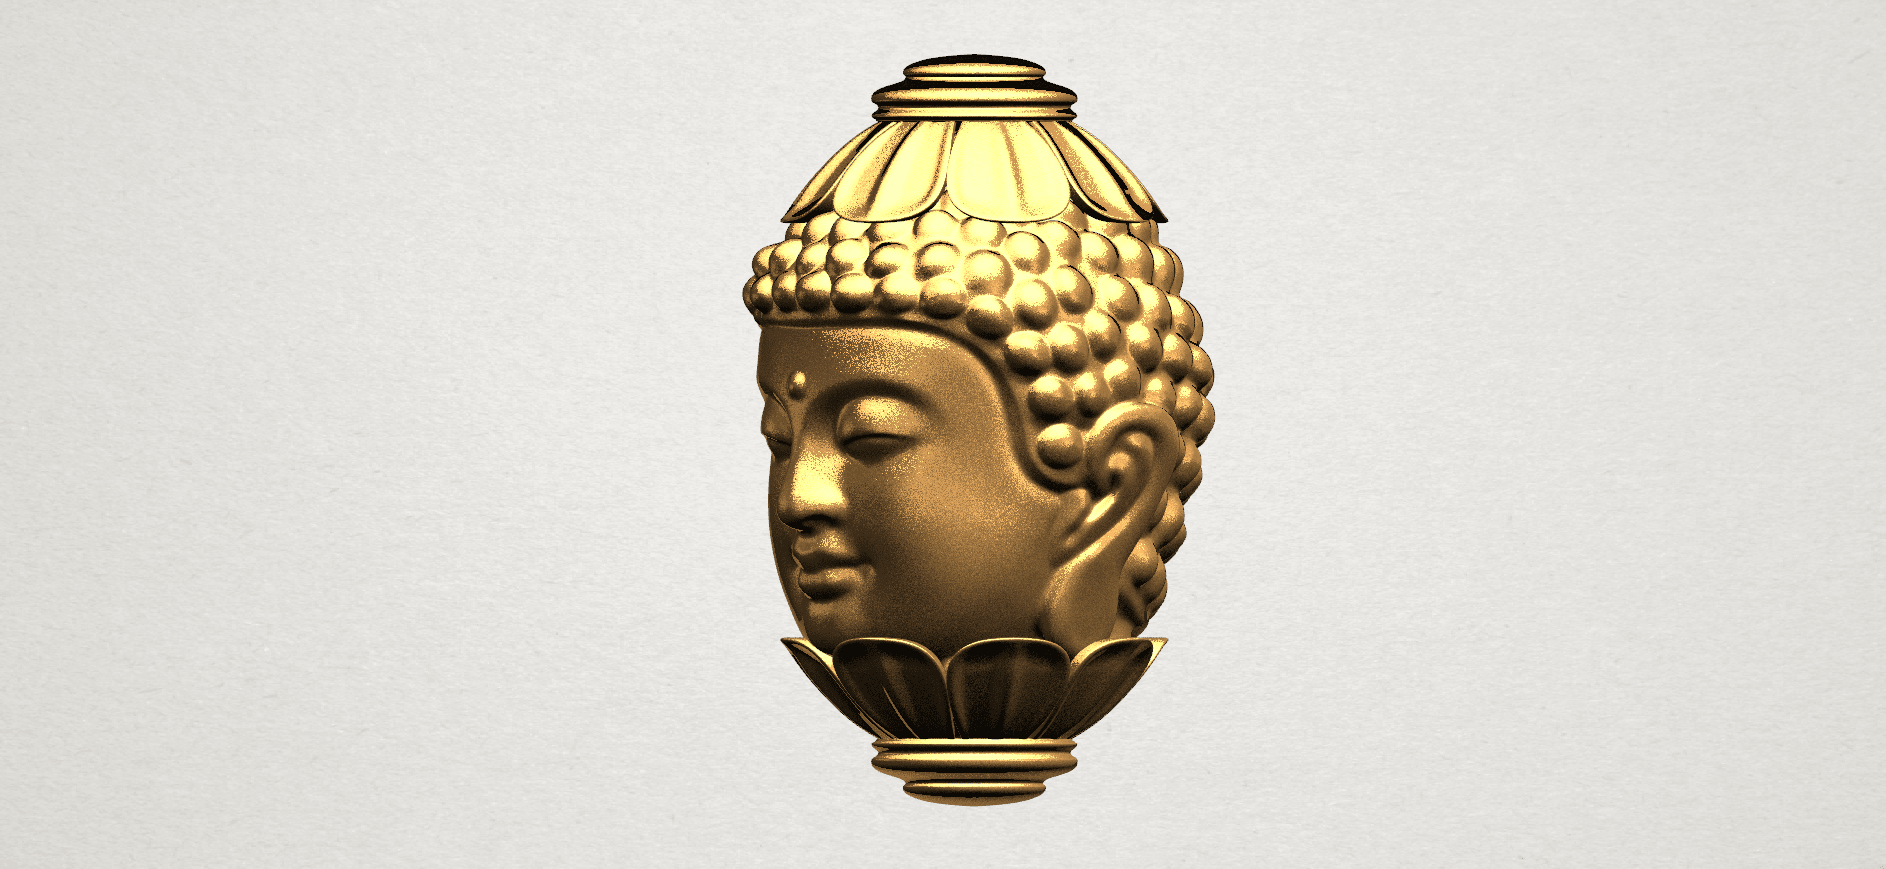 Buddha - Head Sculpture 80mm -A03.png Download free STL file Buddha - Head Sculpture • 3D printing model, GeorgesNikkei